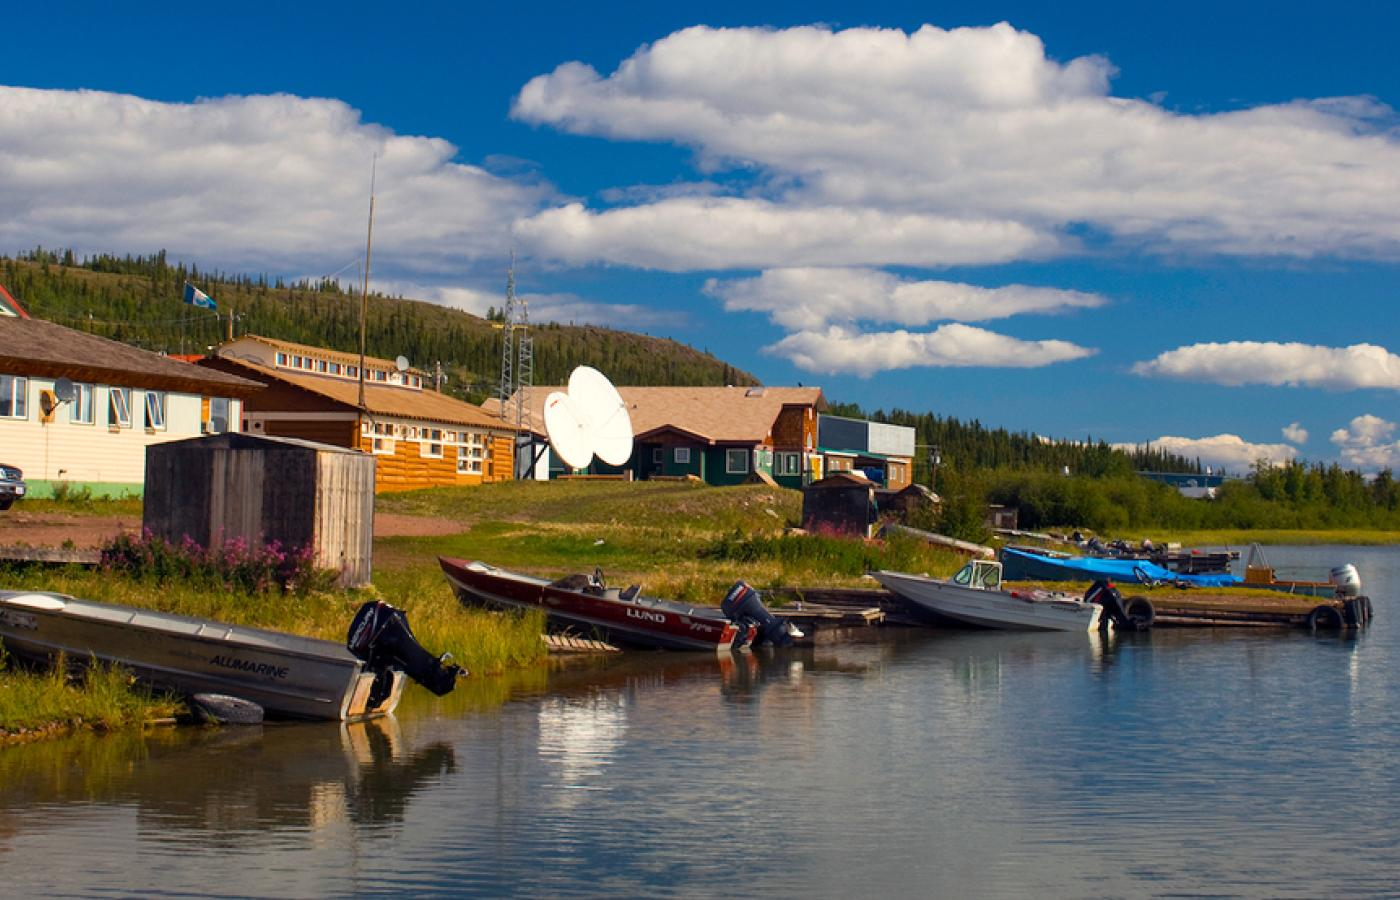 Many communities in Canada's Northwest Territories are located on the shores of Great Slave Lake or Great Bear Lake.